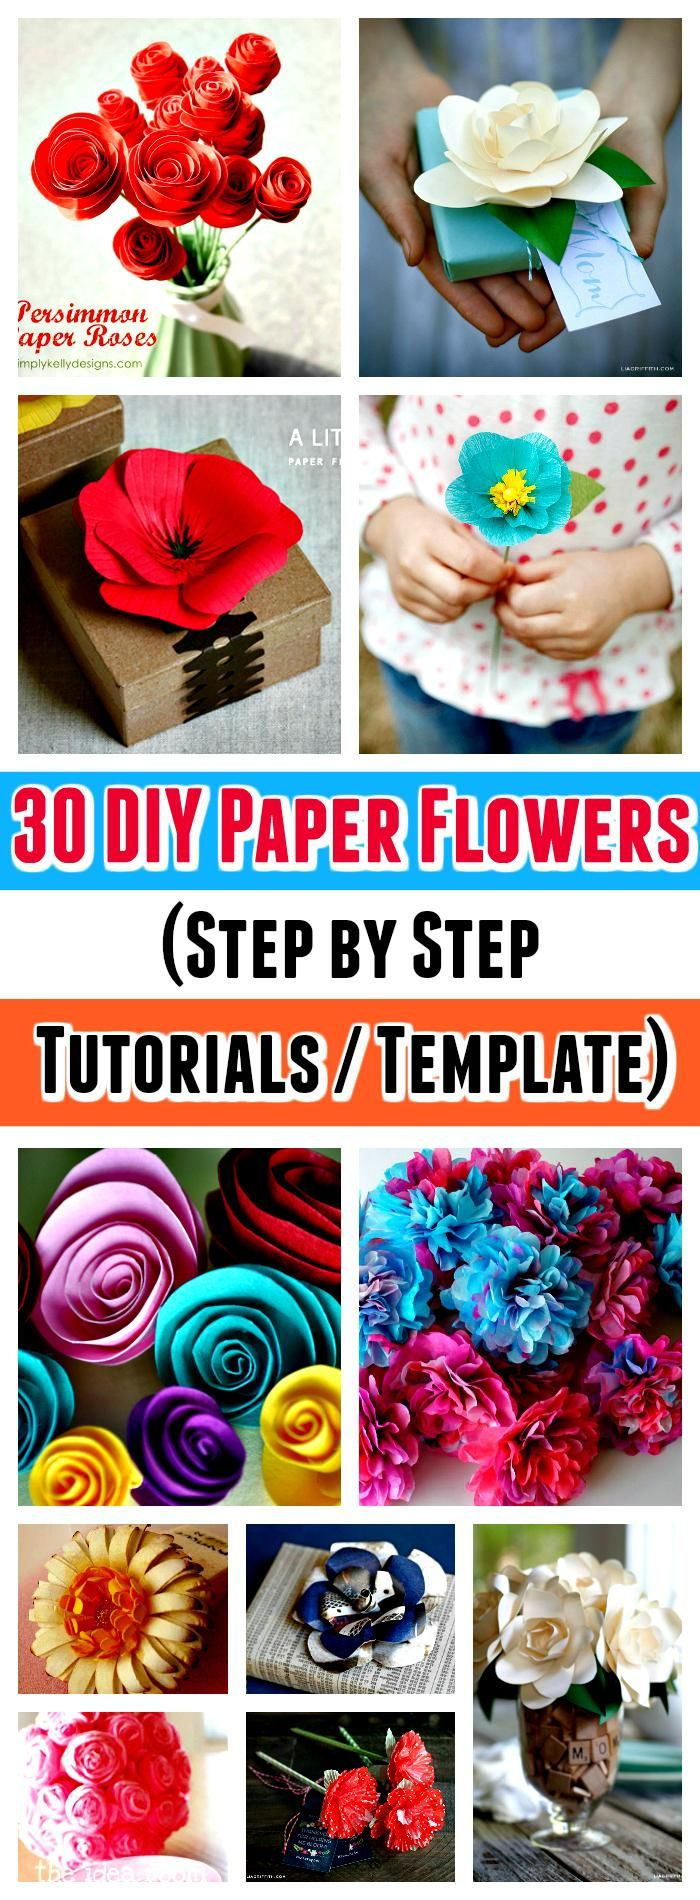 DIY Paper Flowers Step by Step Tutorials  Template  DIY Crafts